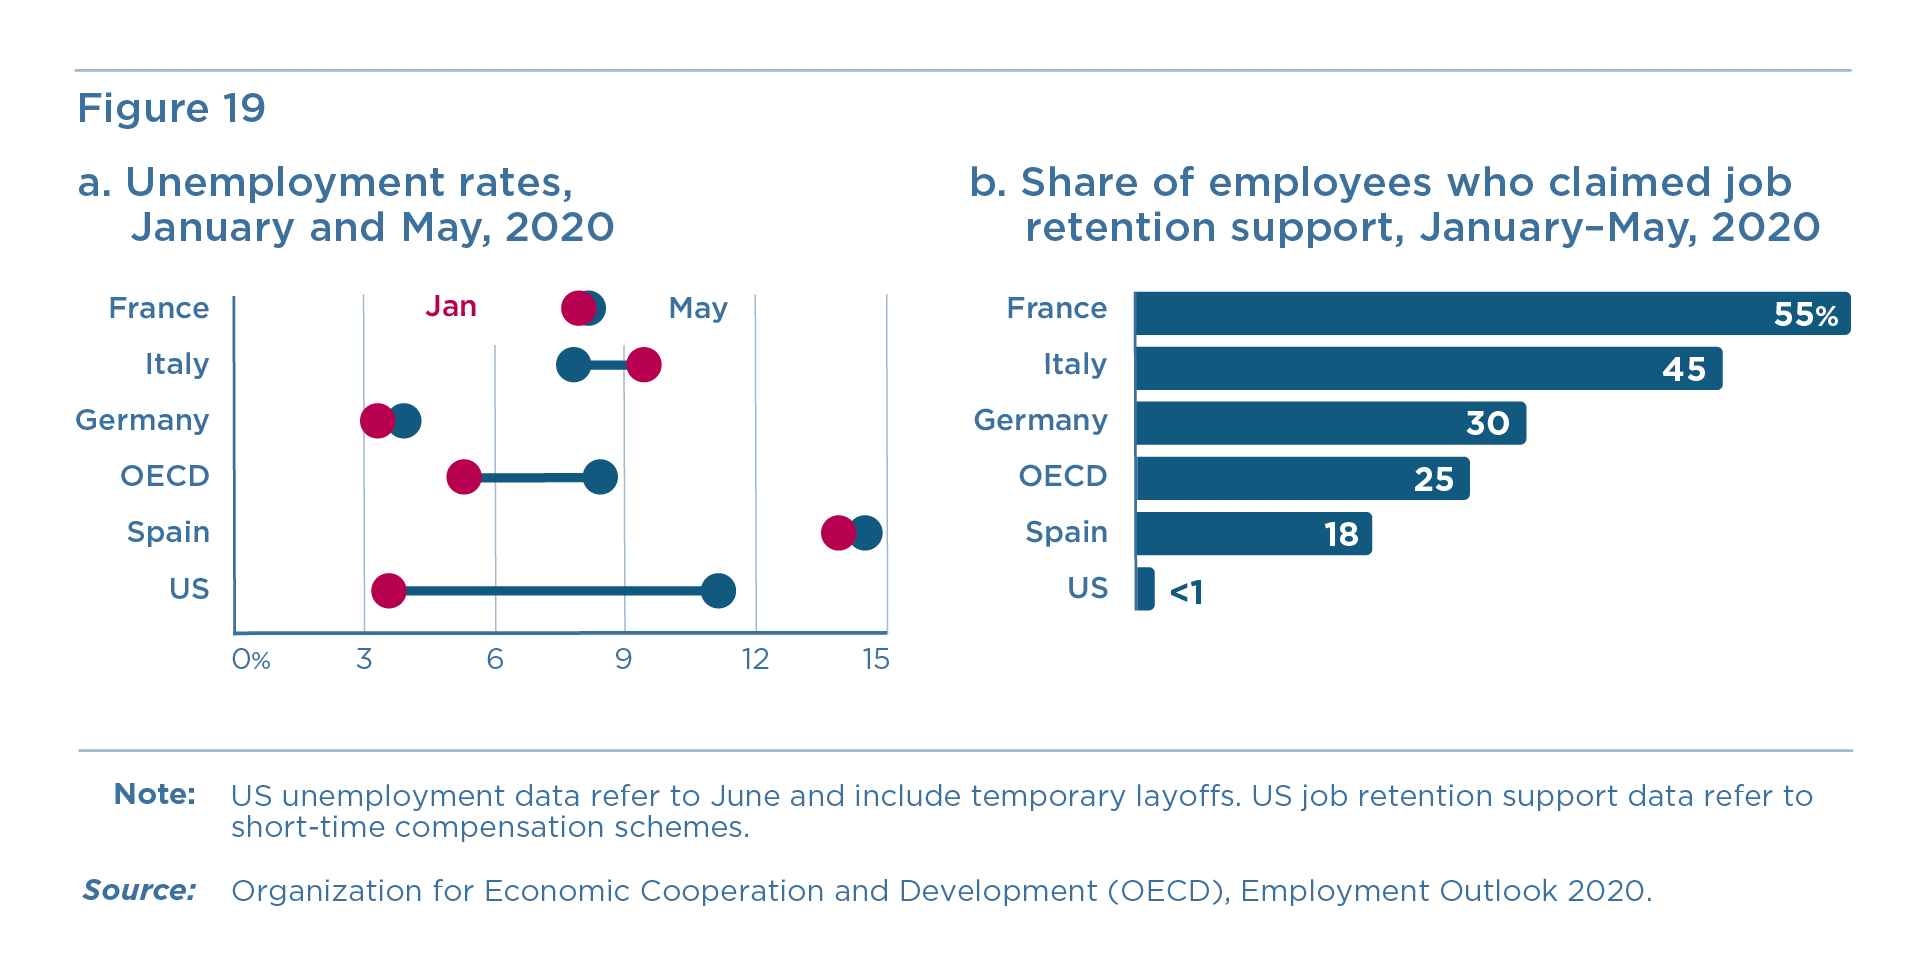 Figure 19: Unemployment rates, January and May, 2020 and share of employees who claimed job retention support, January–May, 2020